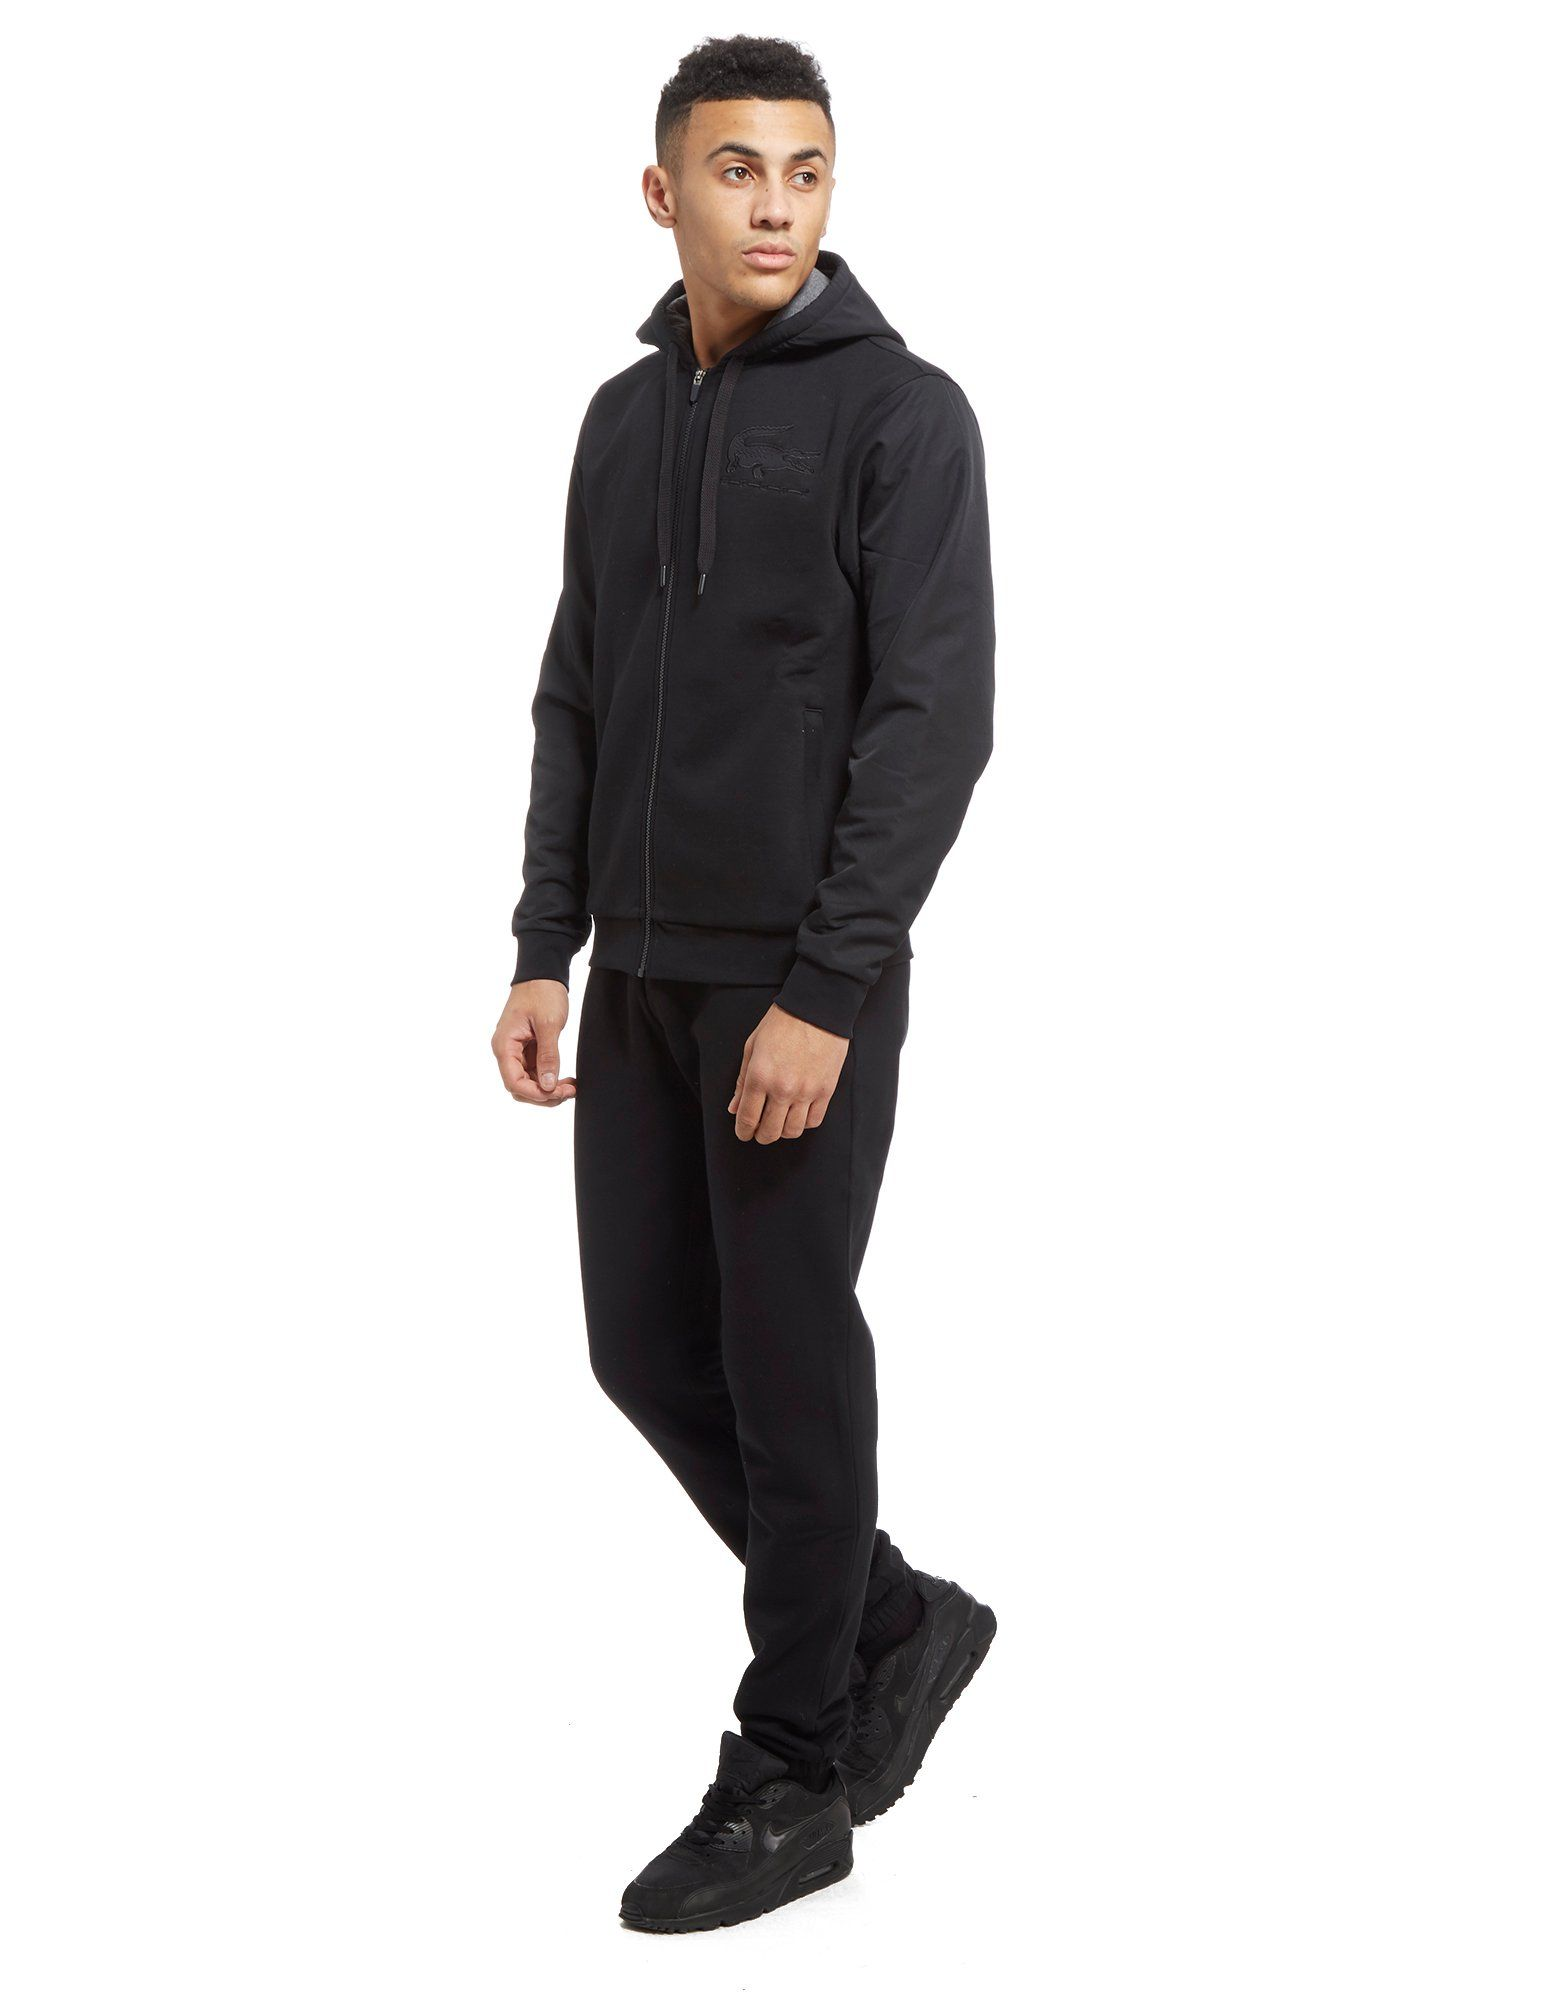 Lacoste Mens Clothing